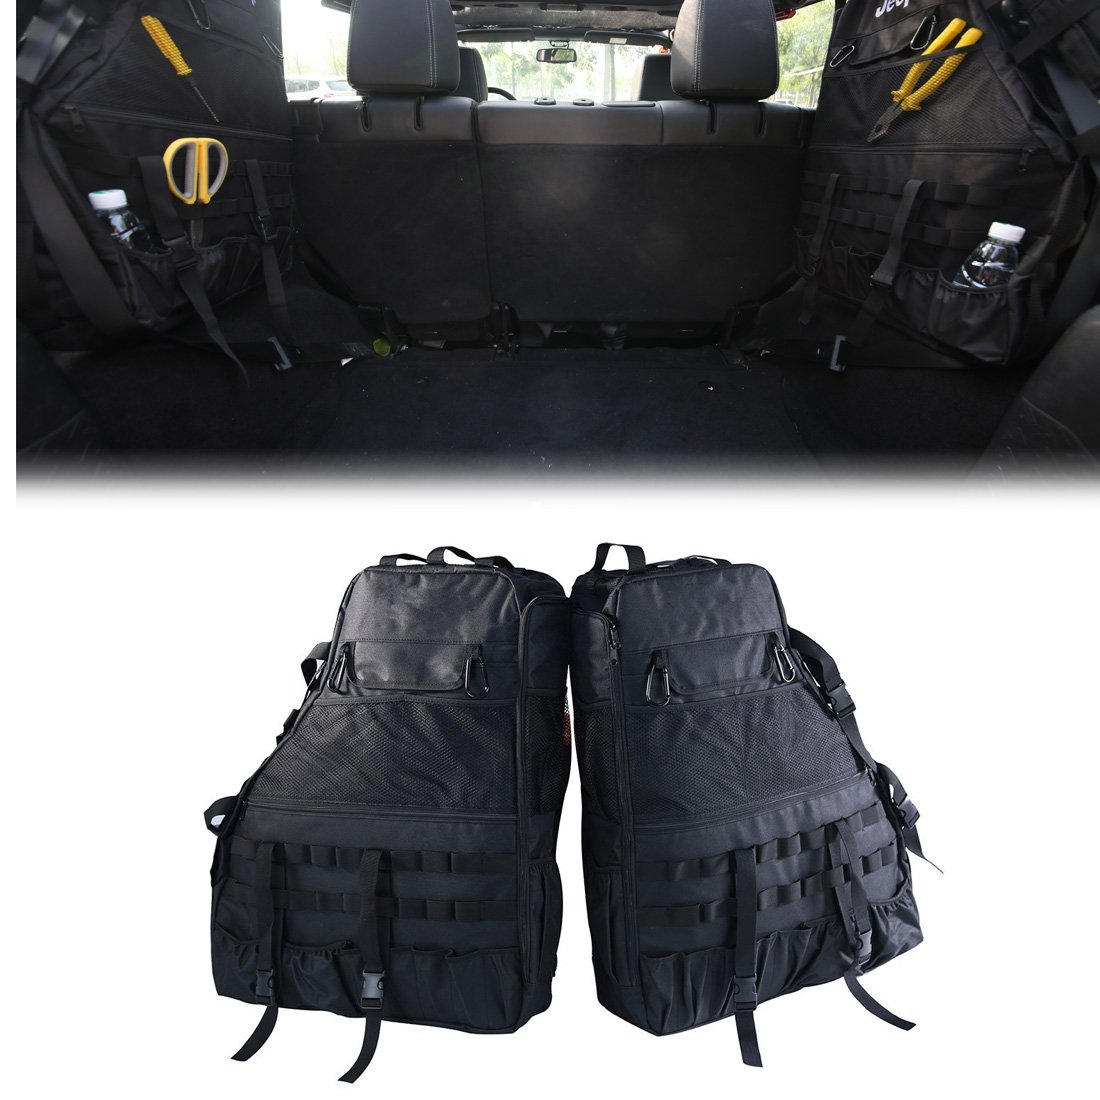 Jeep Storage Bag, Multi-Pockets 2 Side Roll Cage Cargo Organizer for Jeep Wrangler JK 4-door 2007~2017, Jeep Tool Kits Bottle Drink Phone Tissue Gadget Holder for Jeep 4 Door Only cartaoo